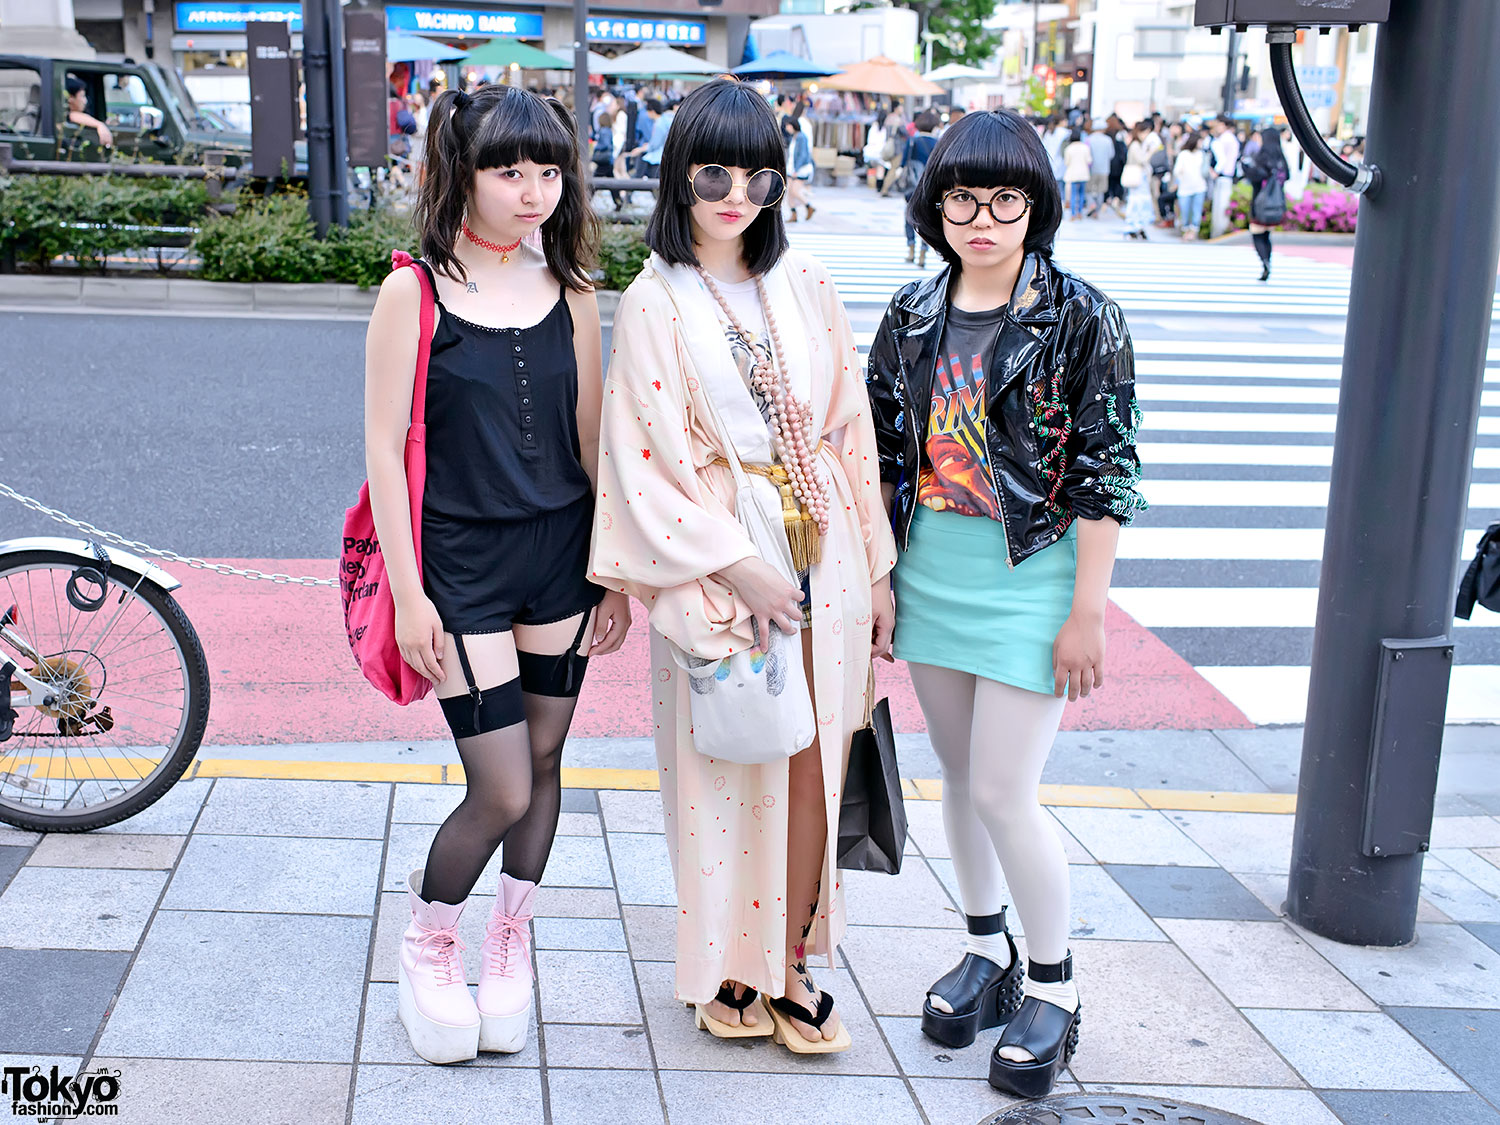 Creative Japanese Girls Wear Kimono Parasol And Geta Japan Sandal Footwear